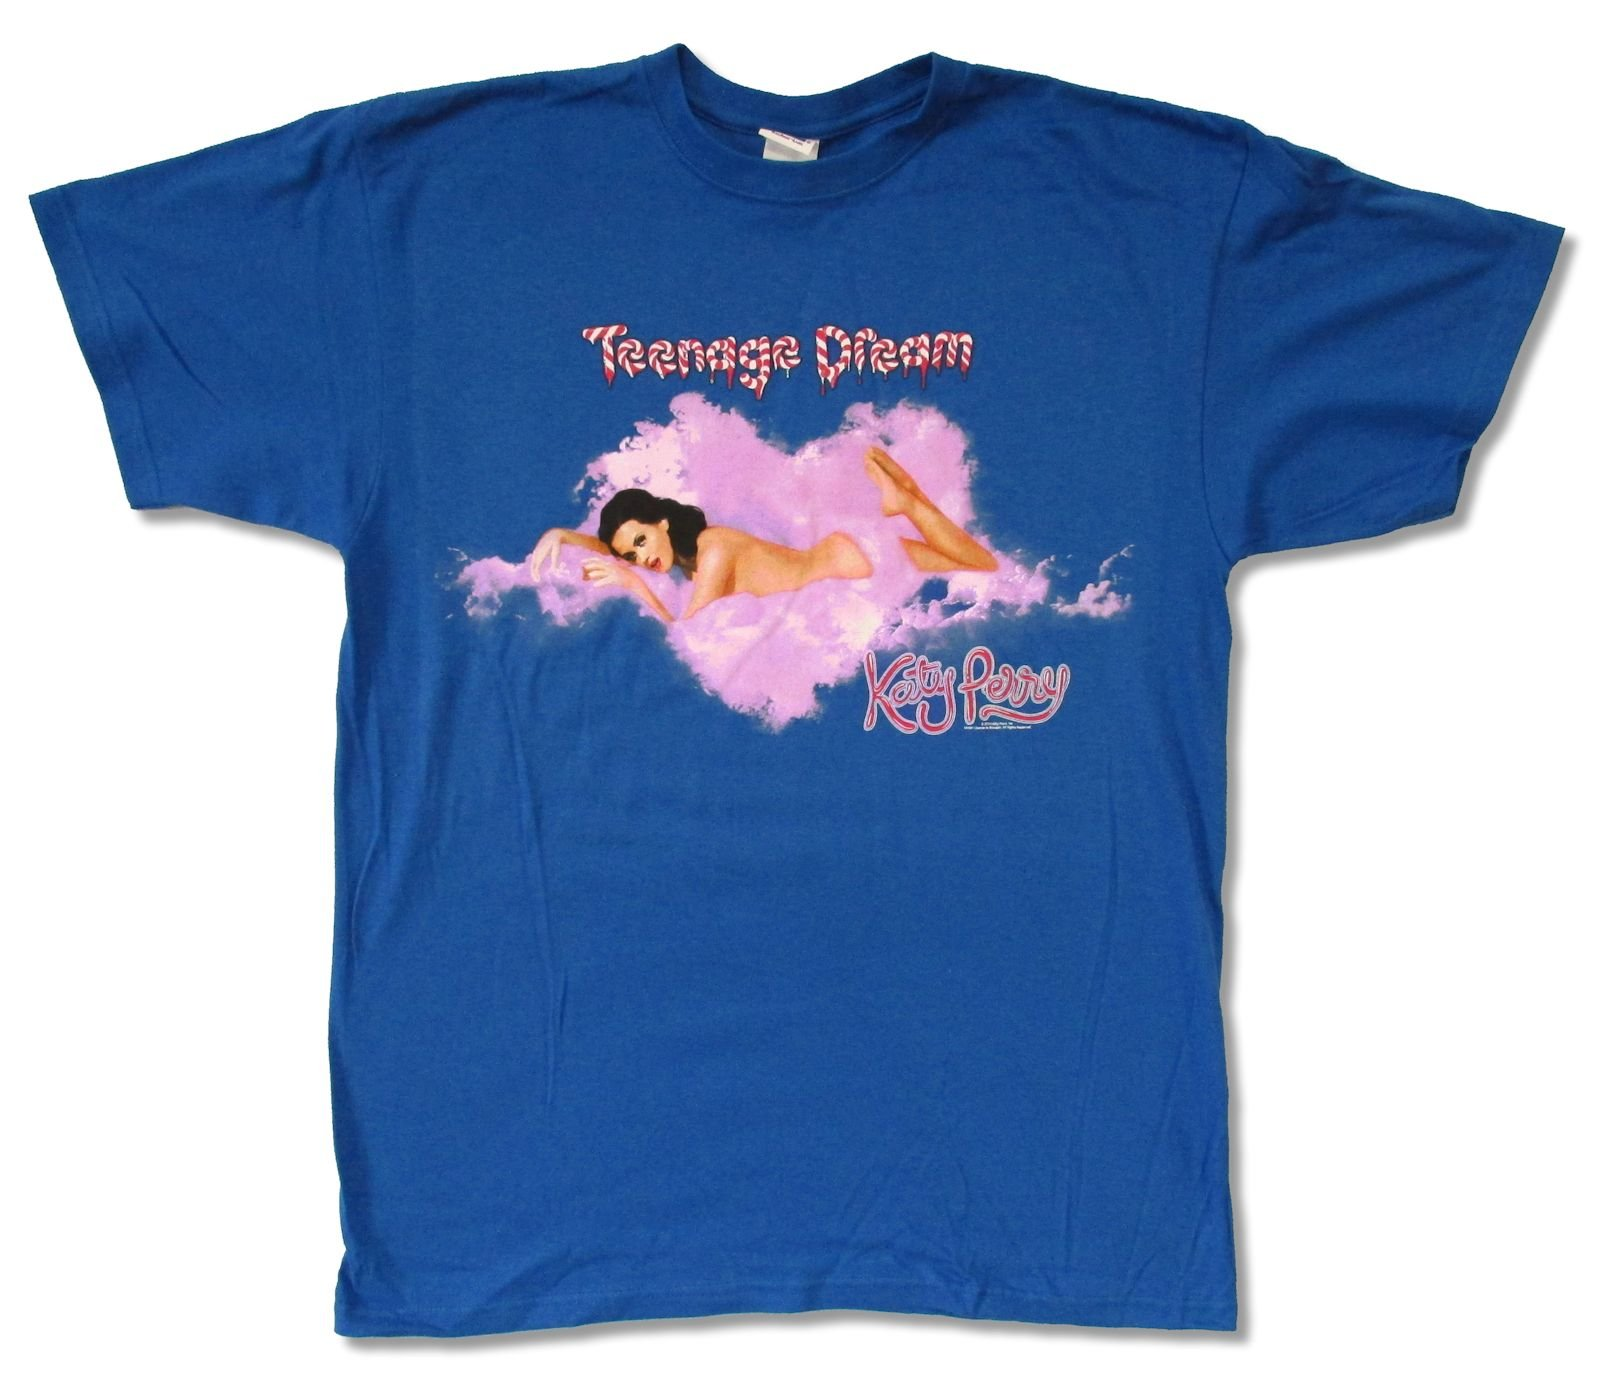 Adult Katy Perry ''Heart Shaped Cloud Tour 2011'' Royal Blue T-Shirt (Large)